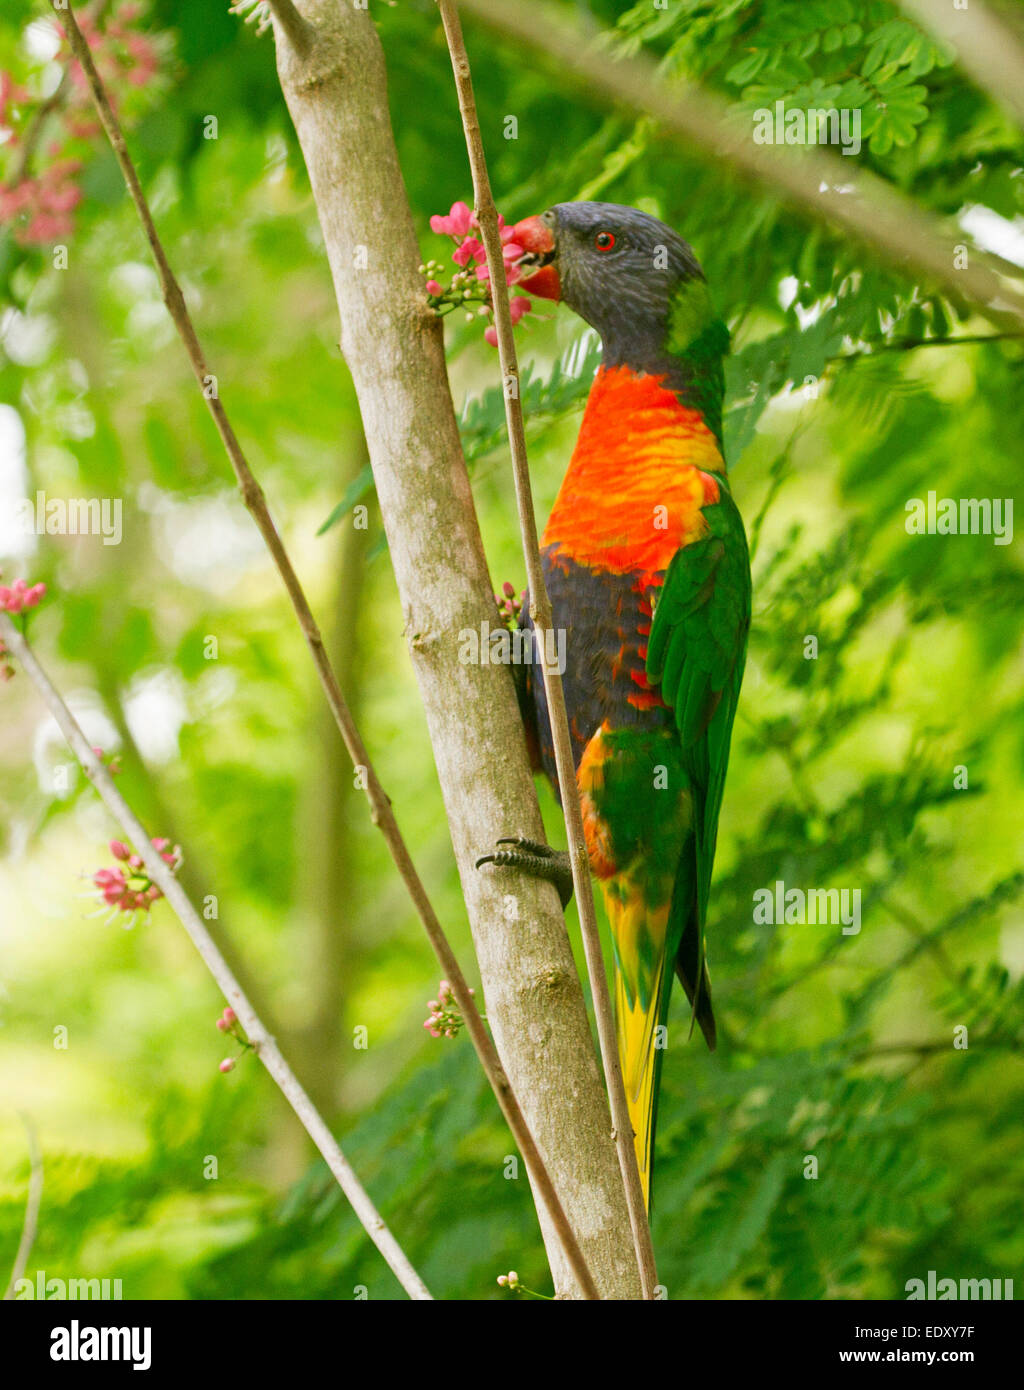 Brightly coloured rainbow lorikeet, Australian parrot in the wild feeding on cluster of pink flowers of native corkwood - Stock Image